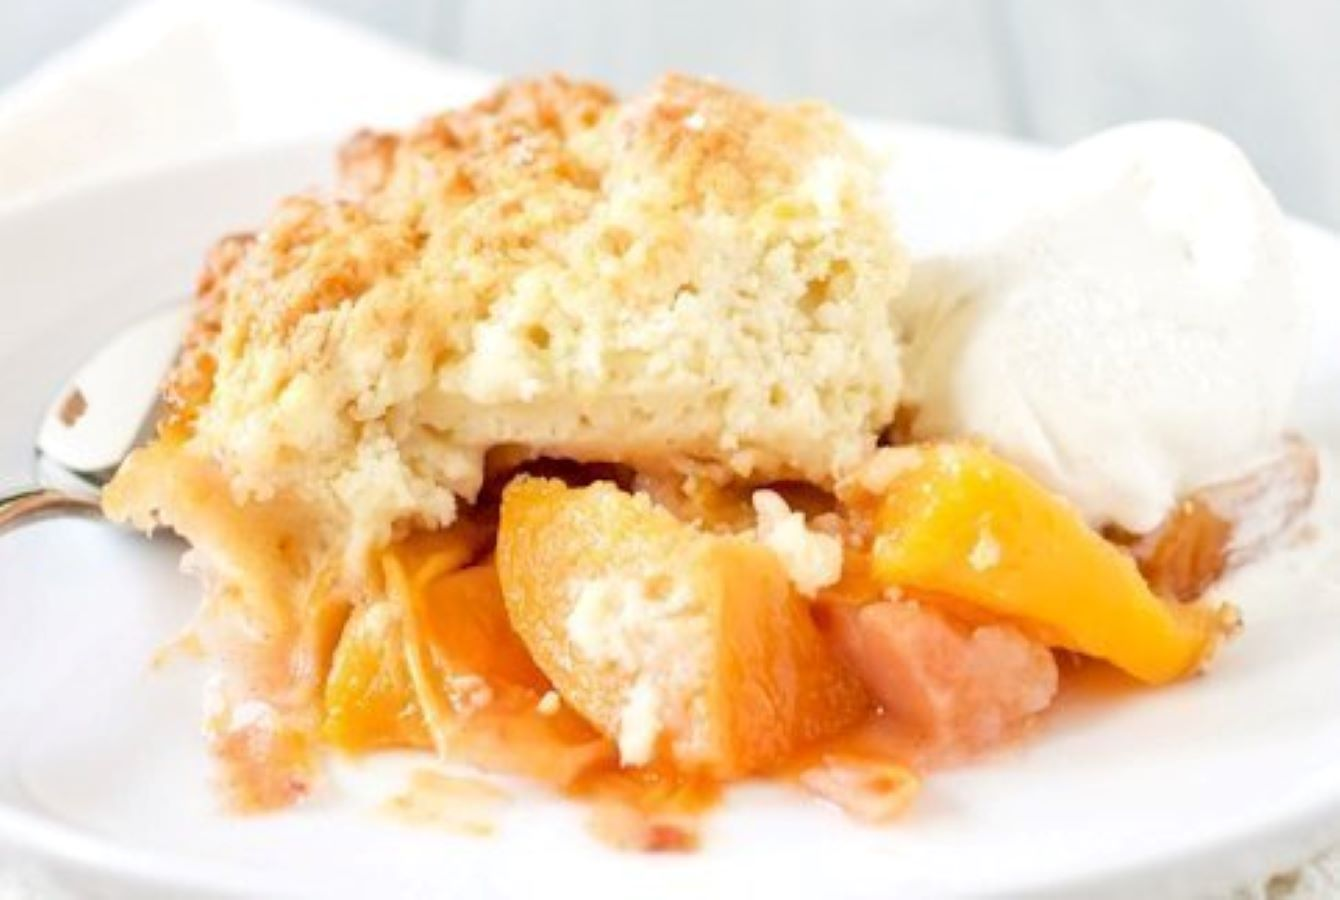 Peach Cobbler Recipe with Sugared Biscuit Topping